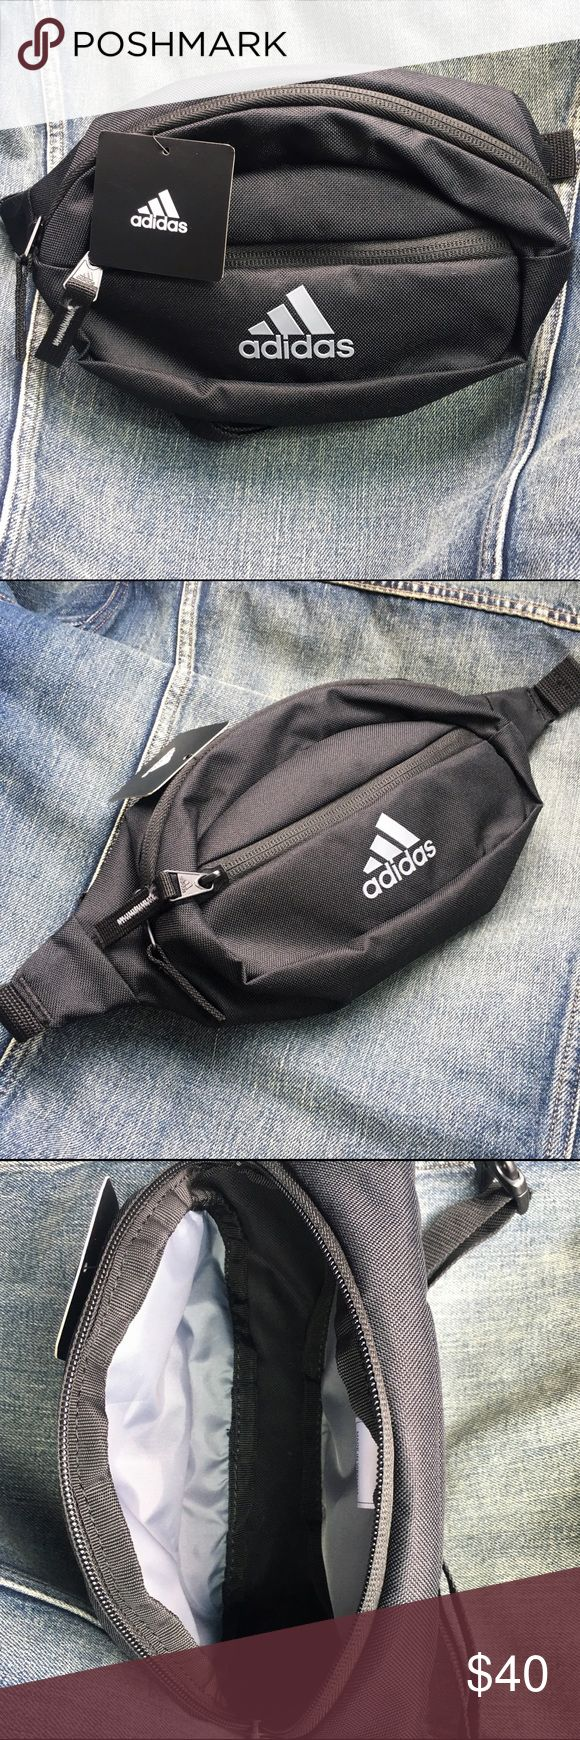 New Adidas fanny pack black waist pack adjustable All black canvas fanny pack by adidas. The gray 3 stripes logo is raised. Super cute. Adjustable waist band. I also have this in red/white/blue Us flag print. adidas Bags Travel Bags